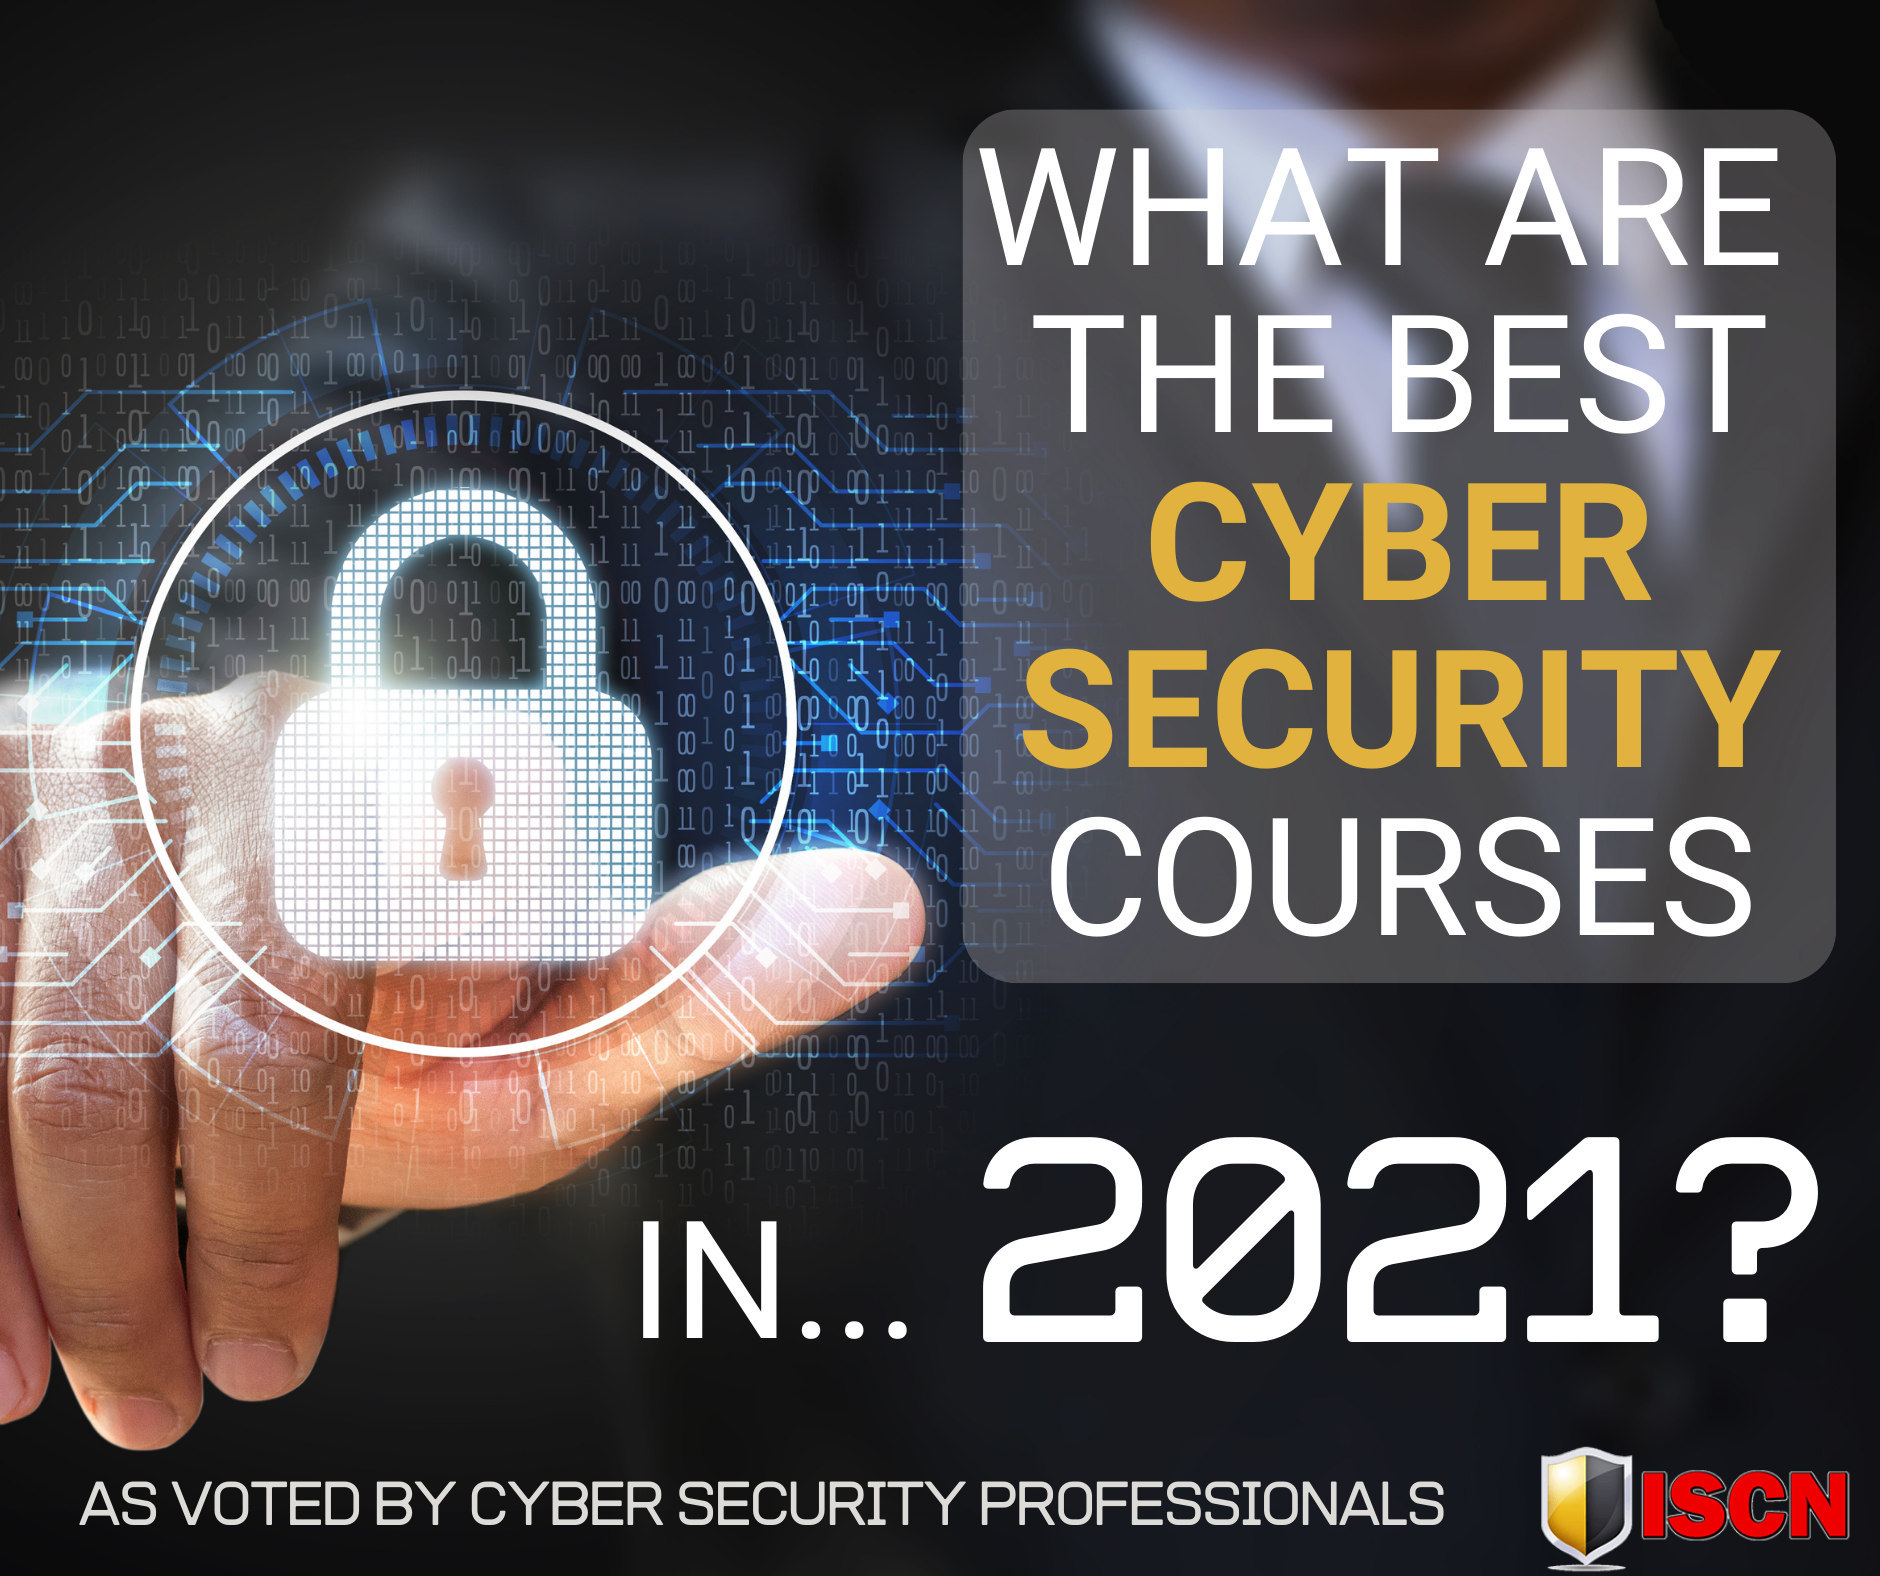 What are the Best Cyber Security Certifications in 2021? (List of the Top 10)